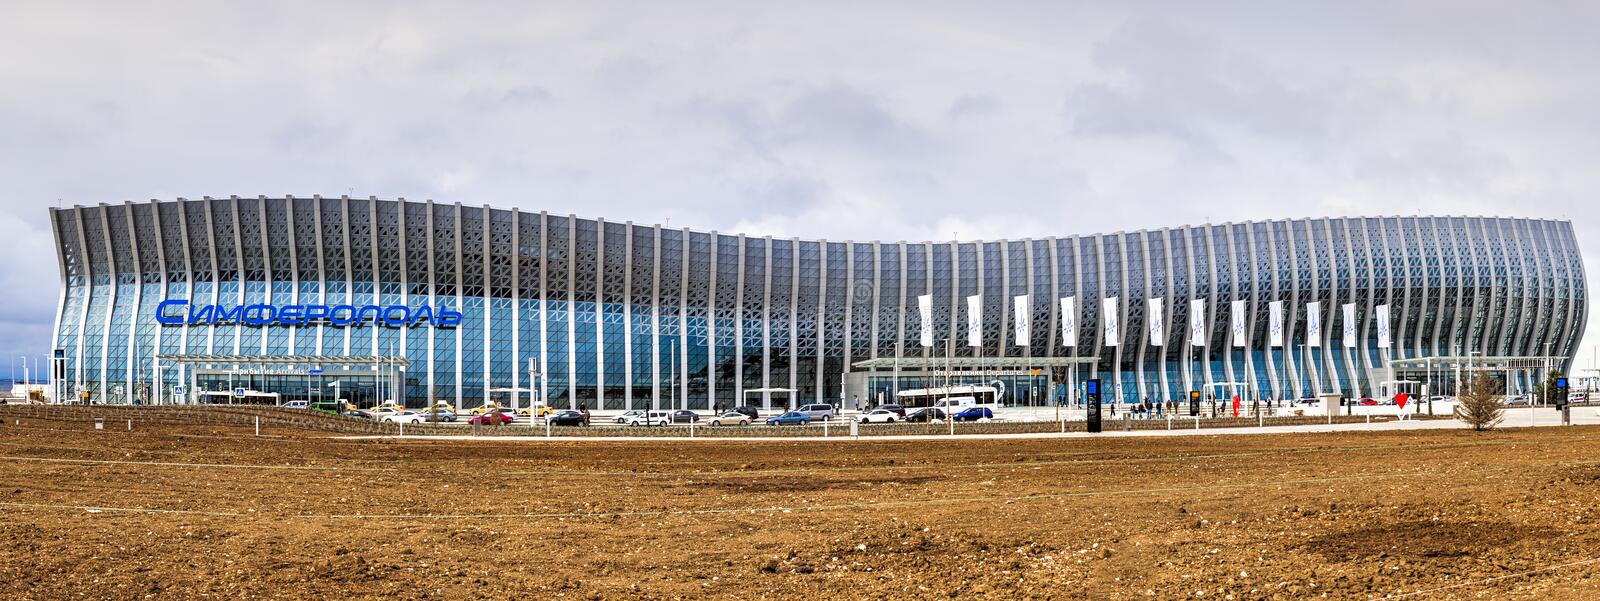 Simferopol, Russland - 20. April 2018: Internationaler Flughafen neues modernes Fluggastterminal Simferopols stockfoto